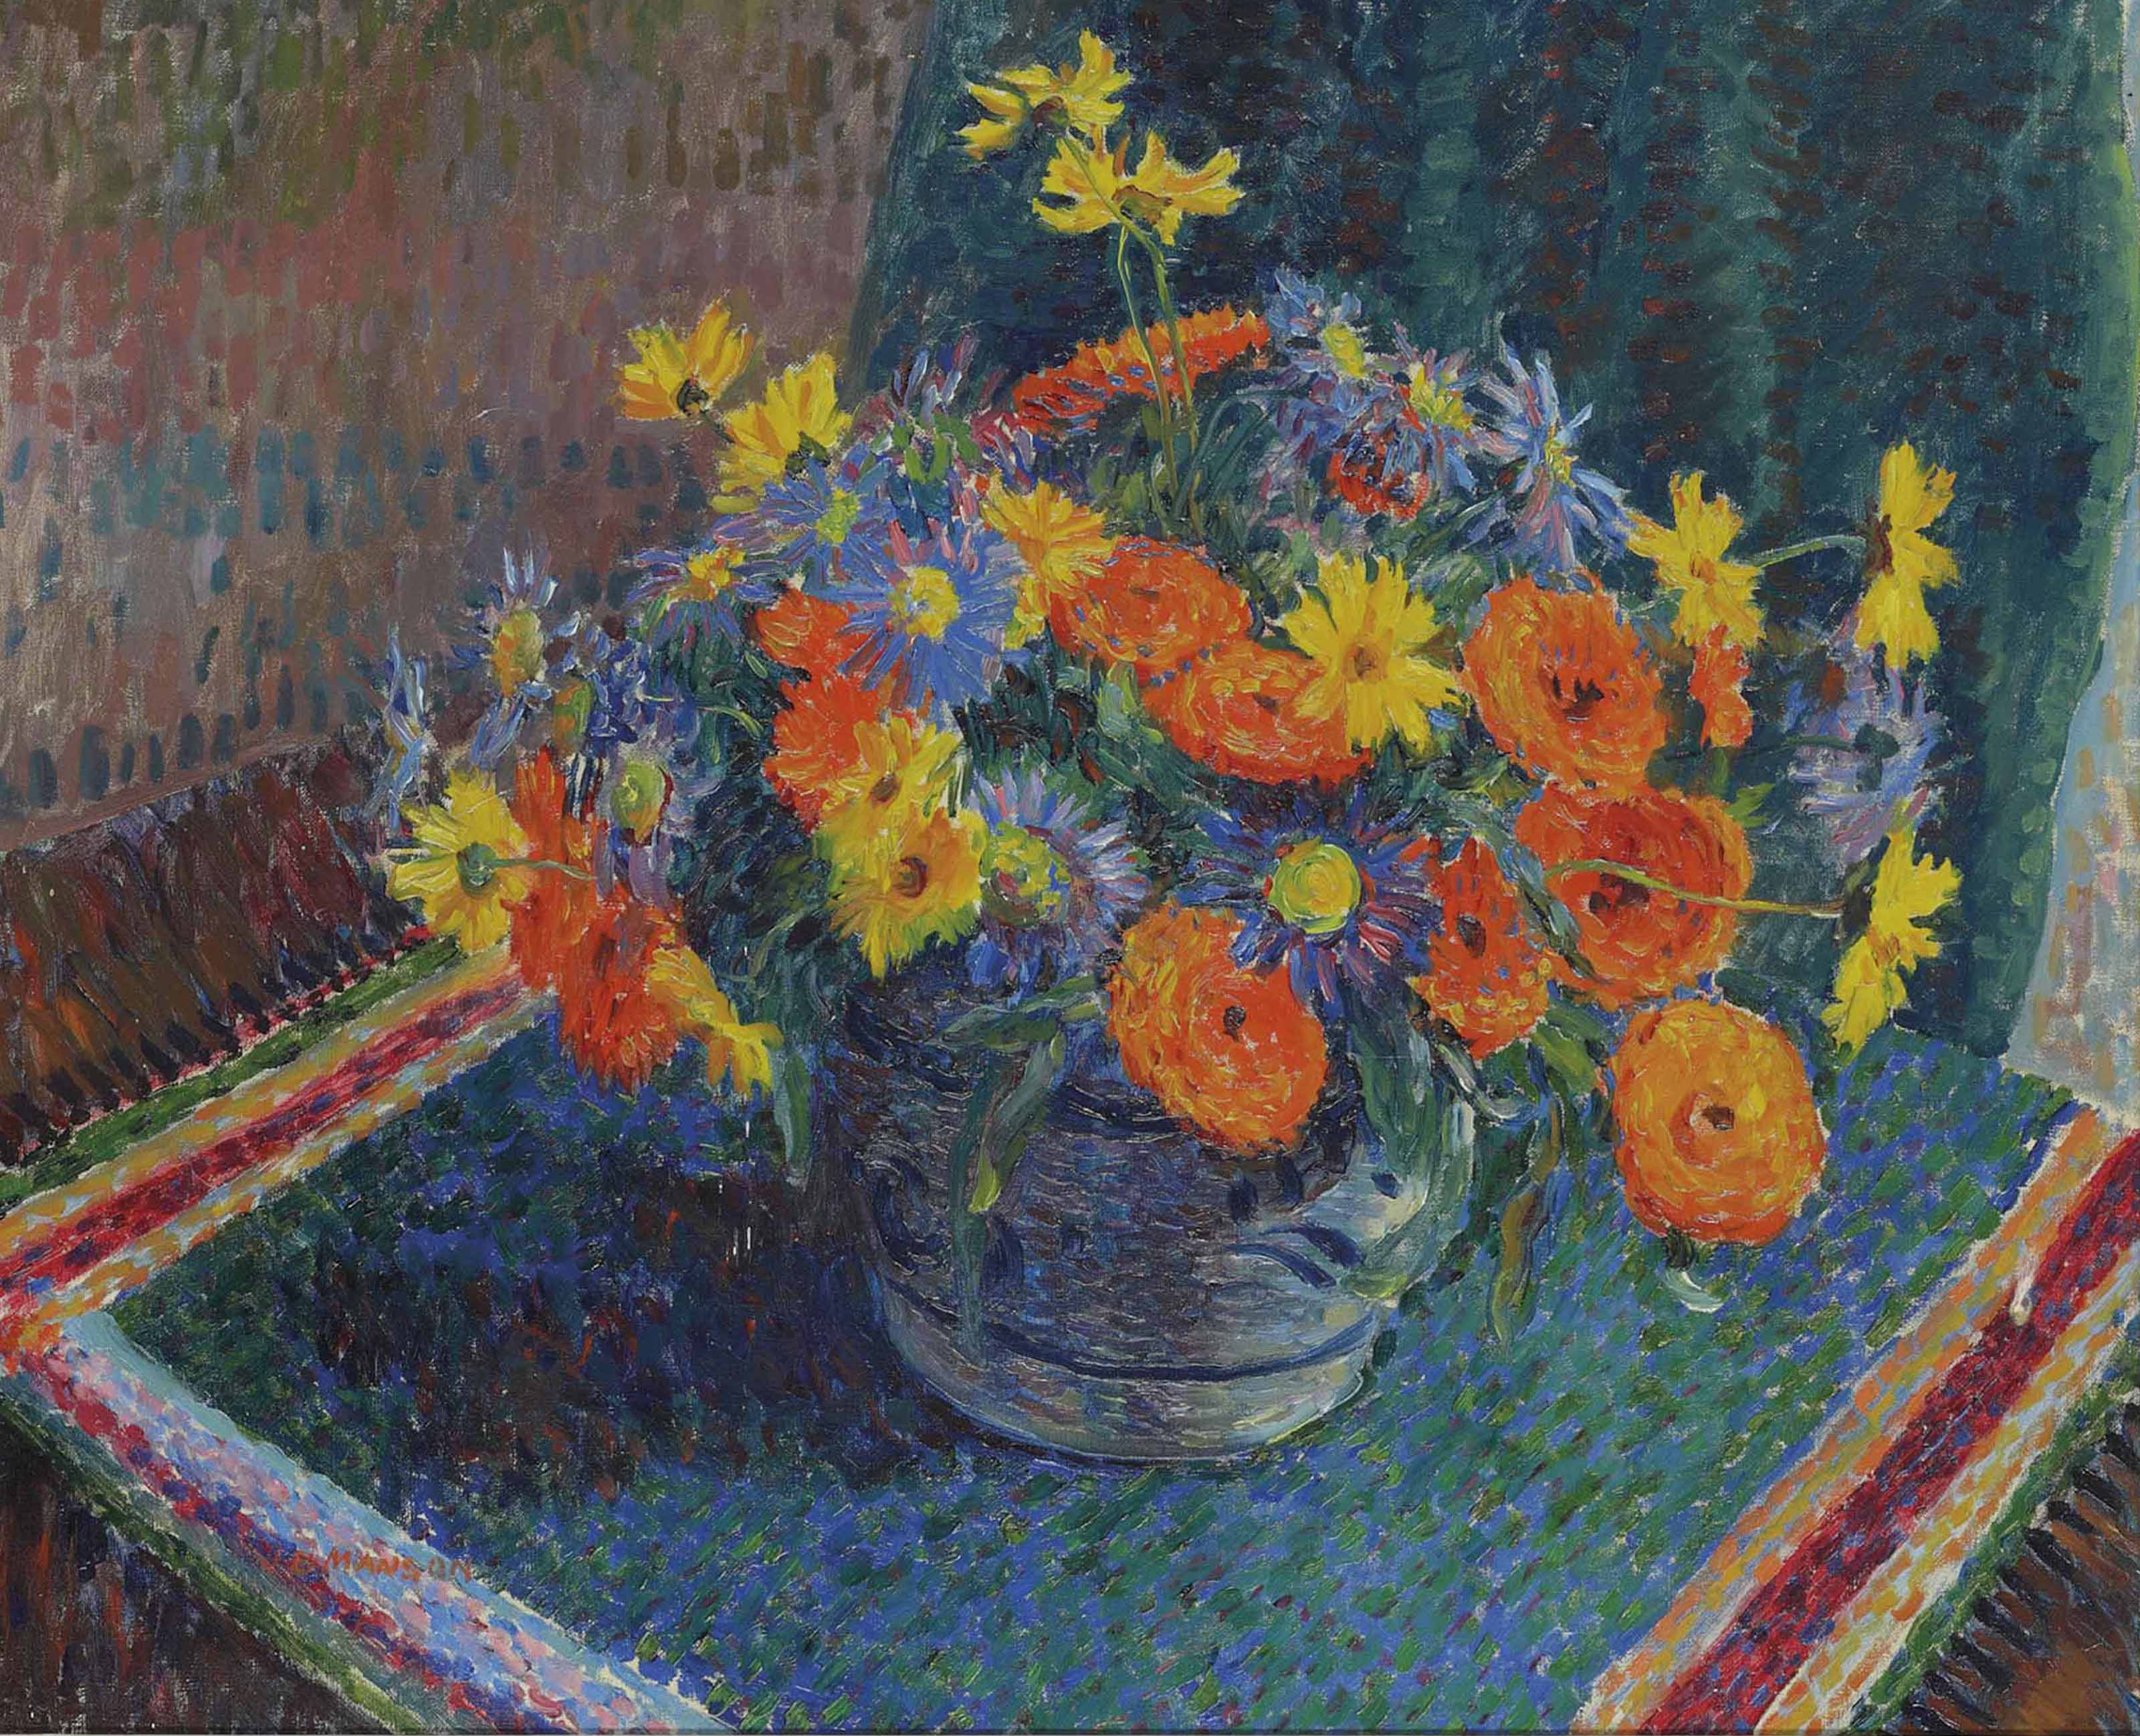 Summer flowers in a pottery bowl on a table